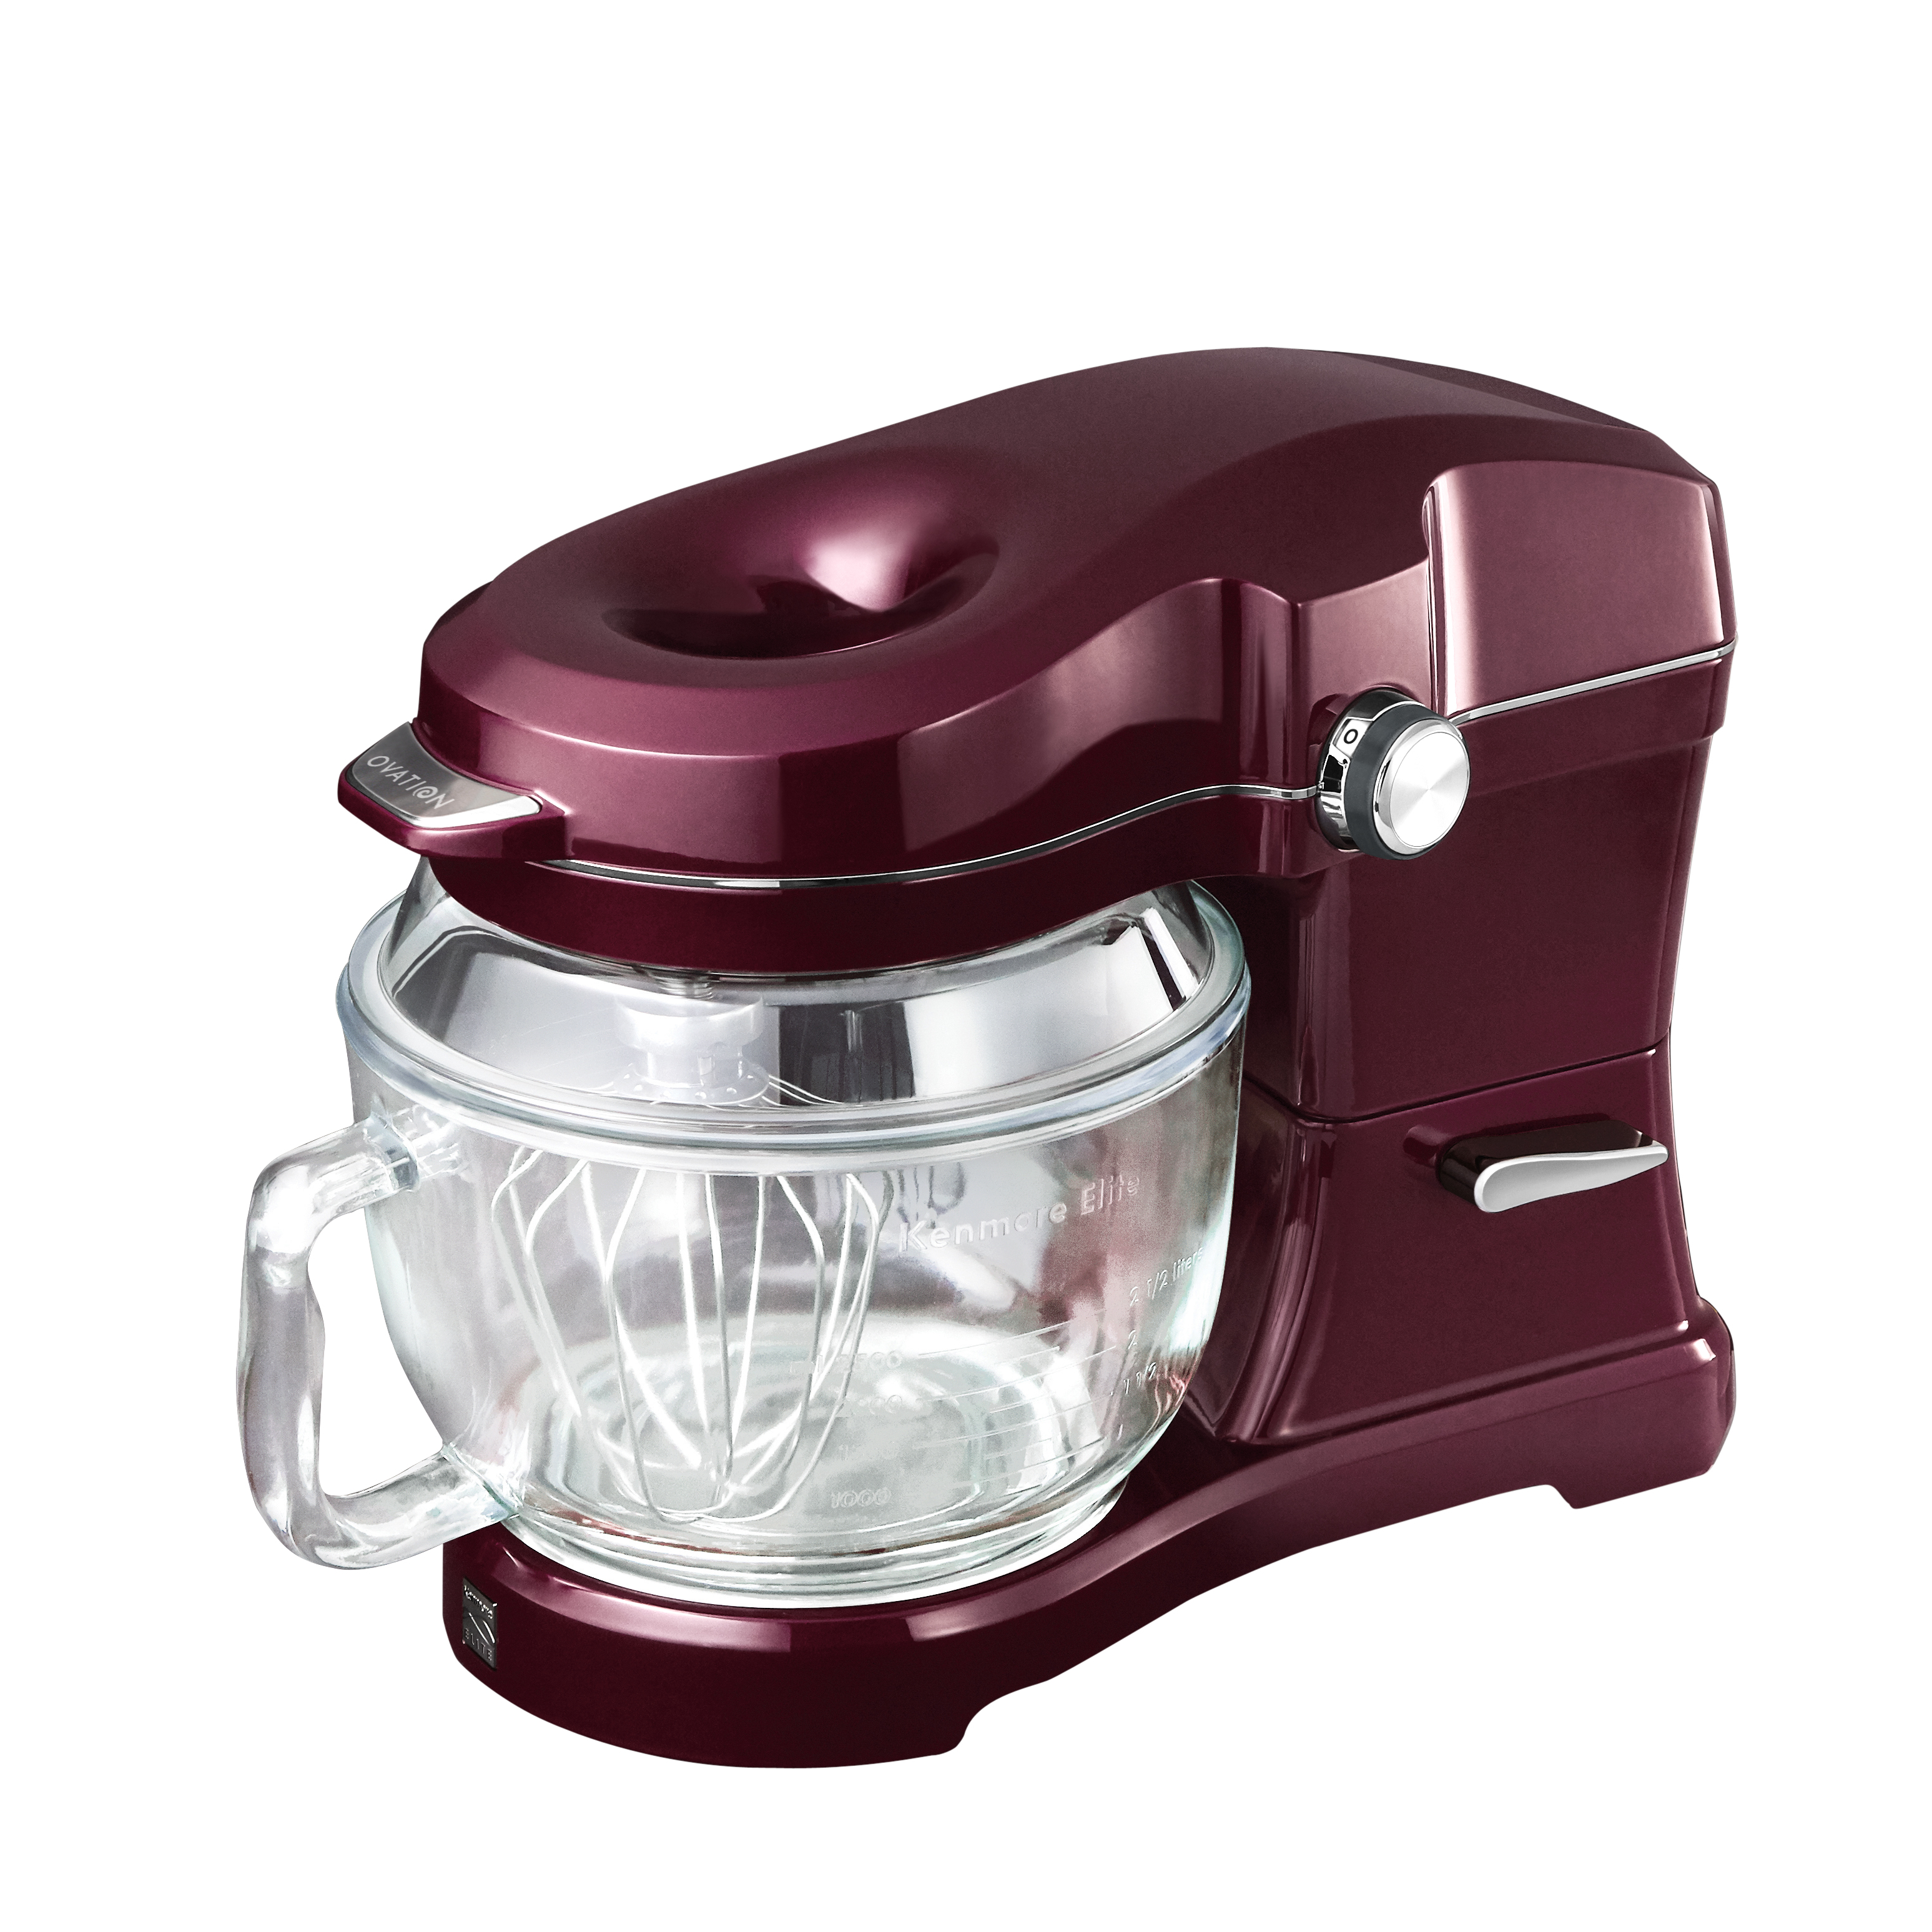 kitchen mixers blanco faucet electric sears kenmore elite 417602 ovation stand mixer burgundy